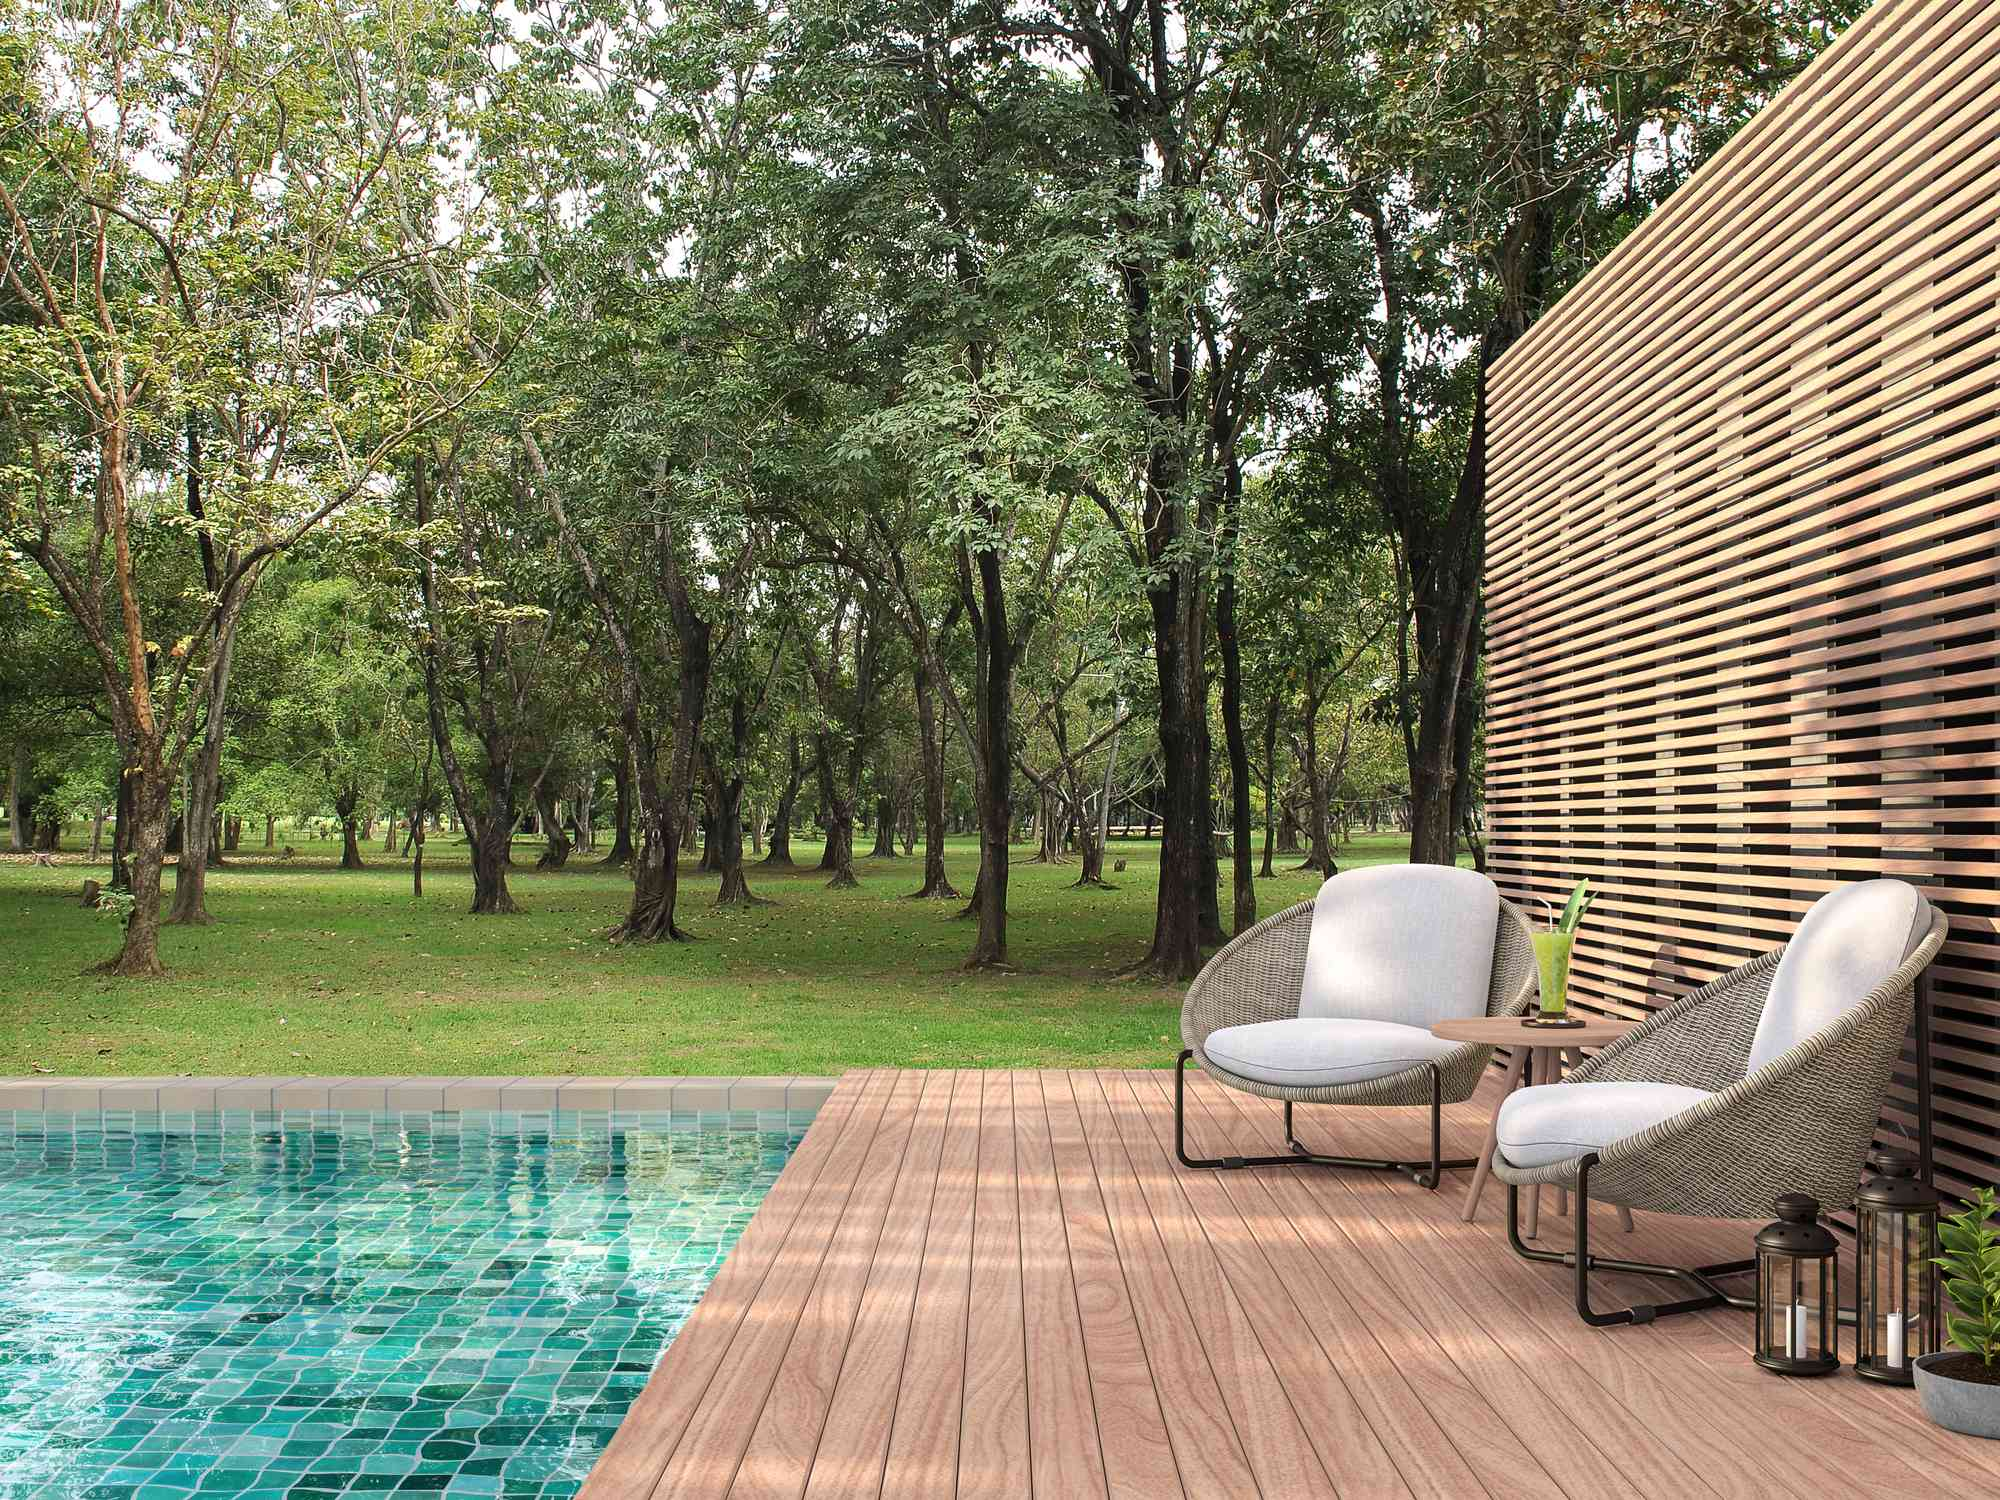 A backyard pool surrounded by a tall wood wall, a wood deck and lounge chairs.